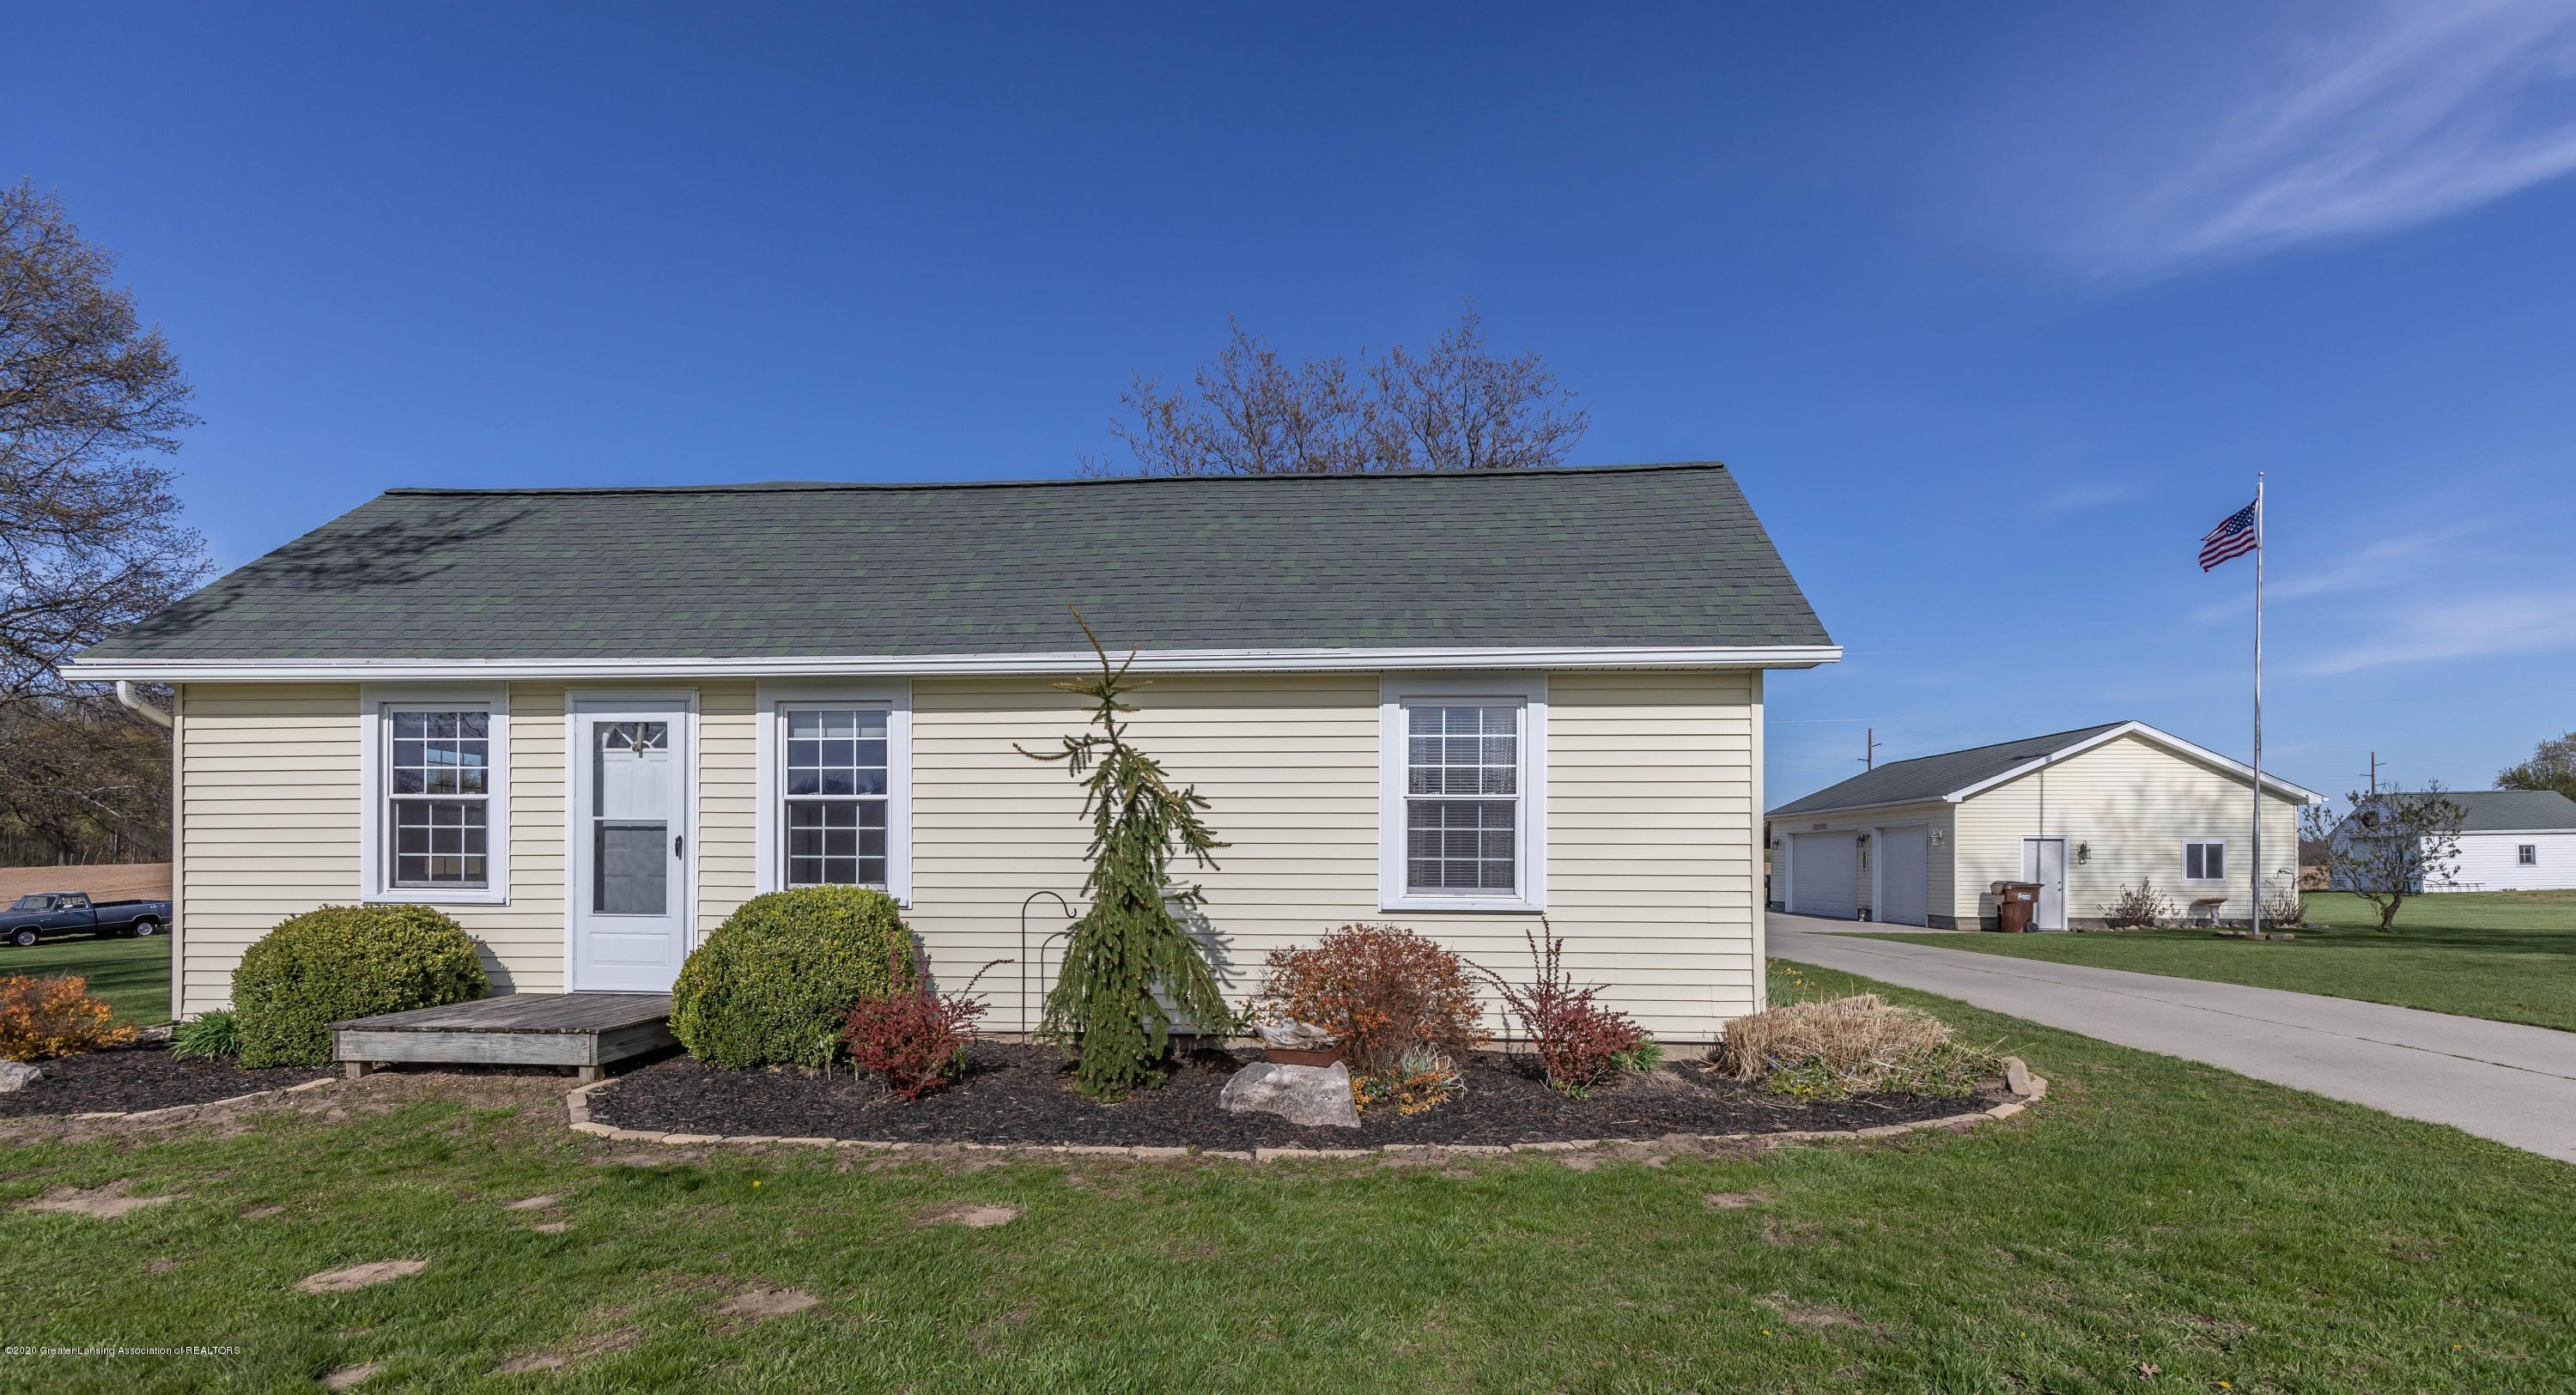 9485 Kinch Rd - Front3 - 2